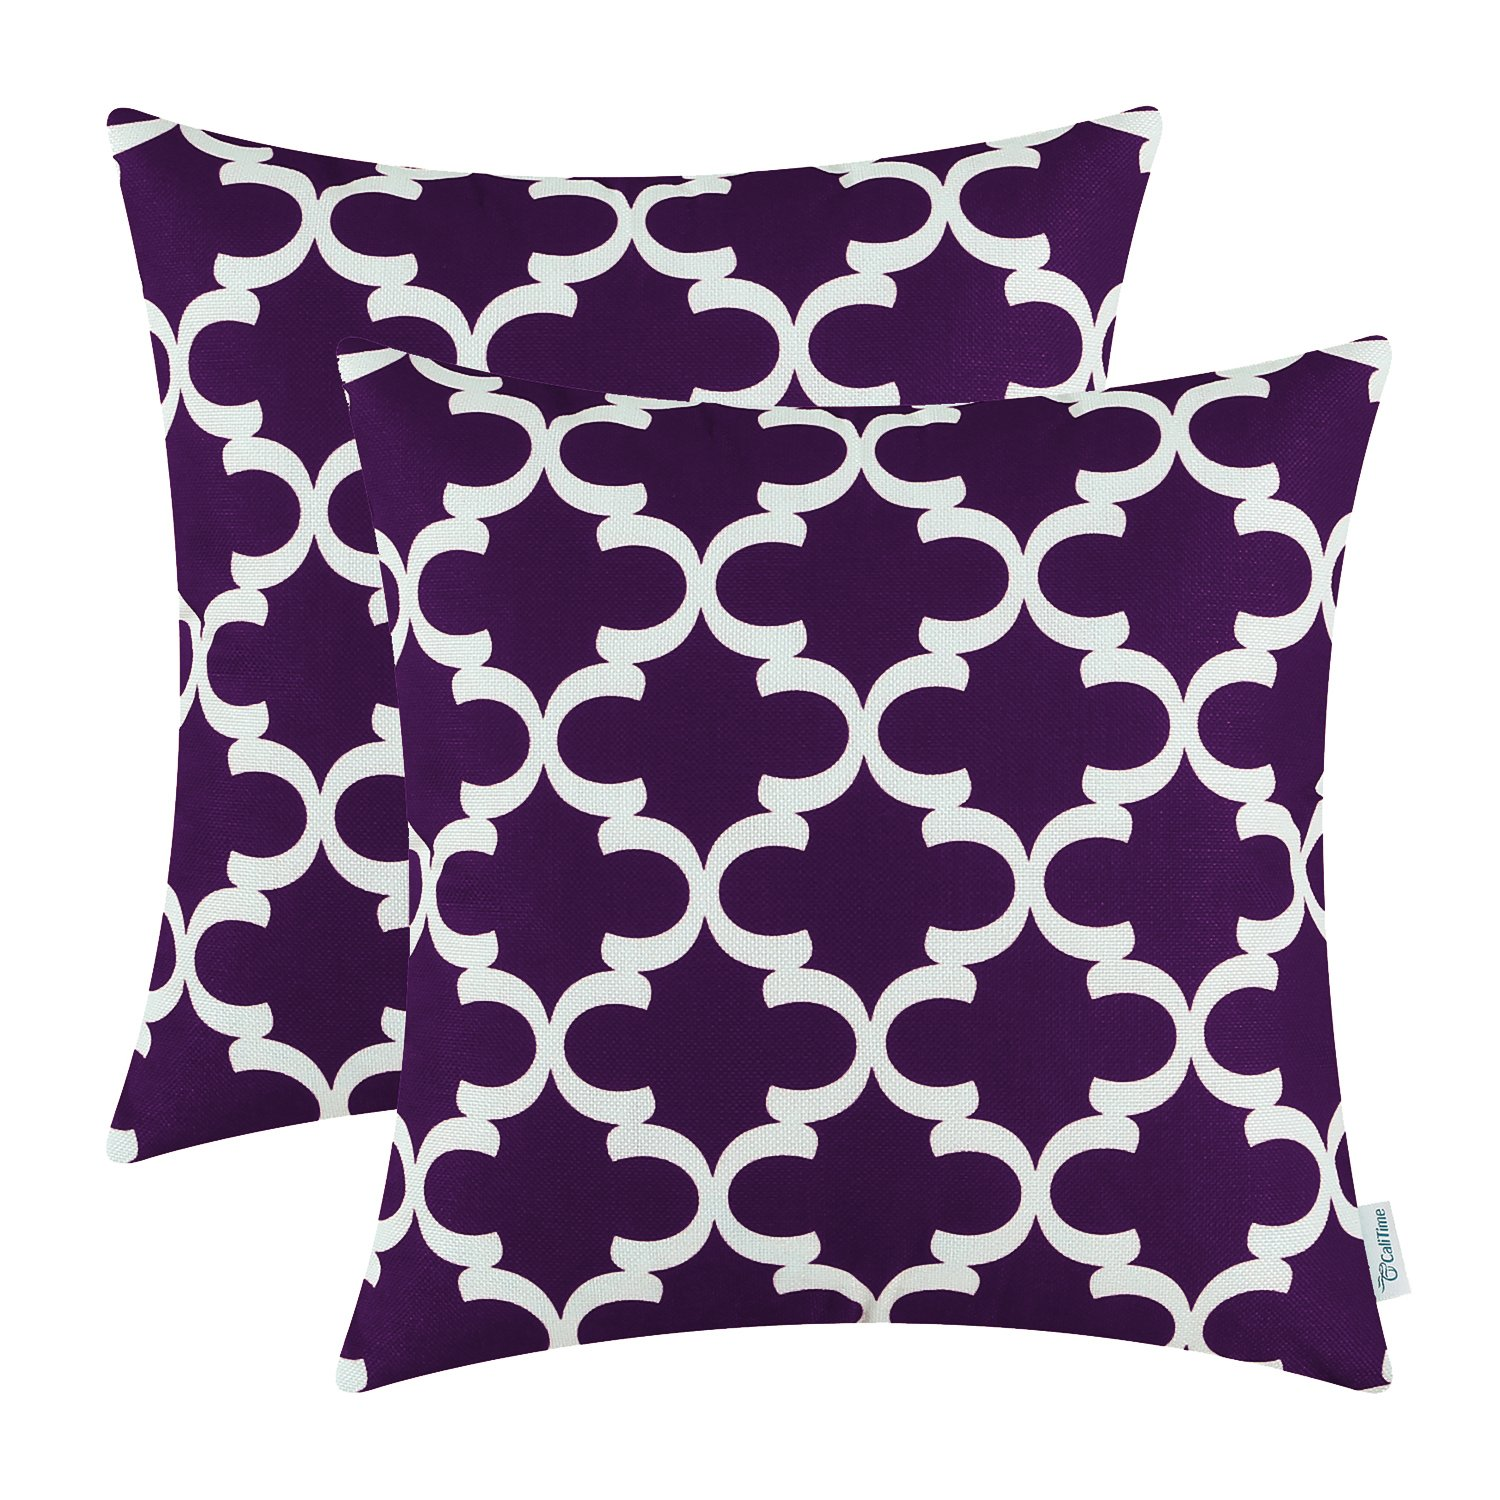 CaliTime Pack of 2 Soft Canvas Throw Pillow Covers Cases for Couch Sofa Home Decor Modern Quatrefoil Accent Geometric 20 X 20 Inches Deep Purple